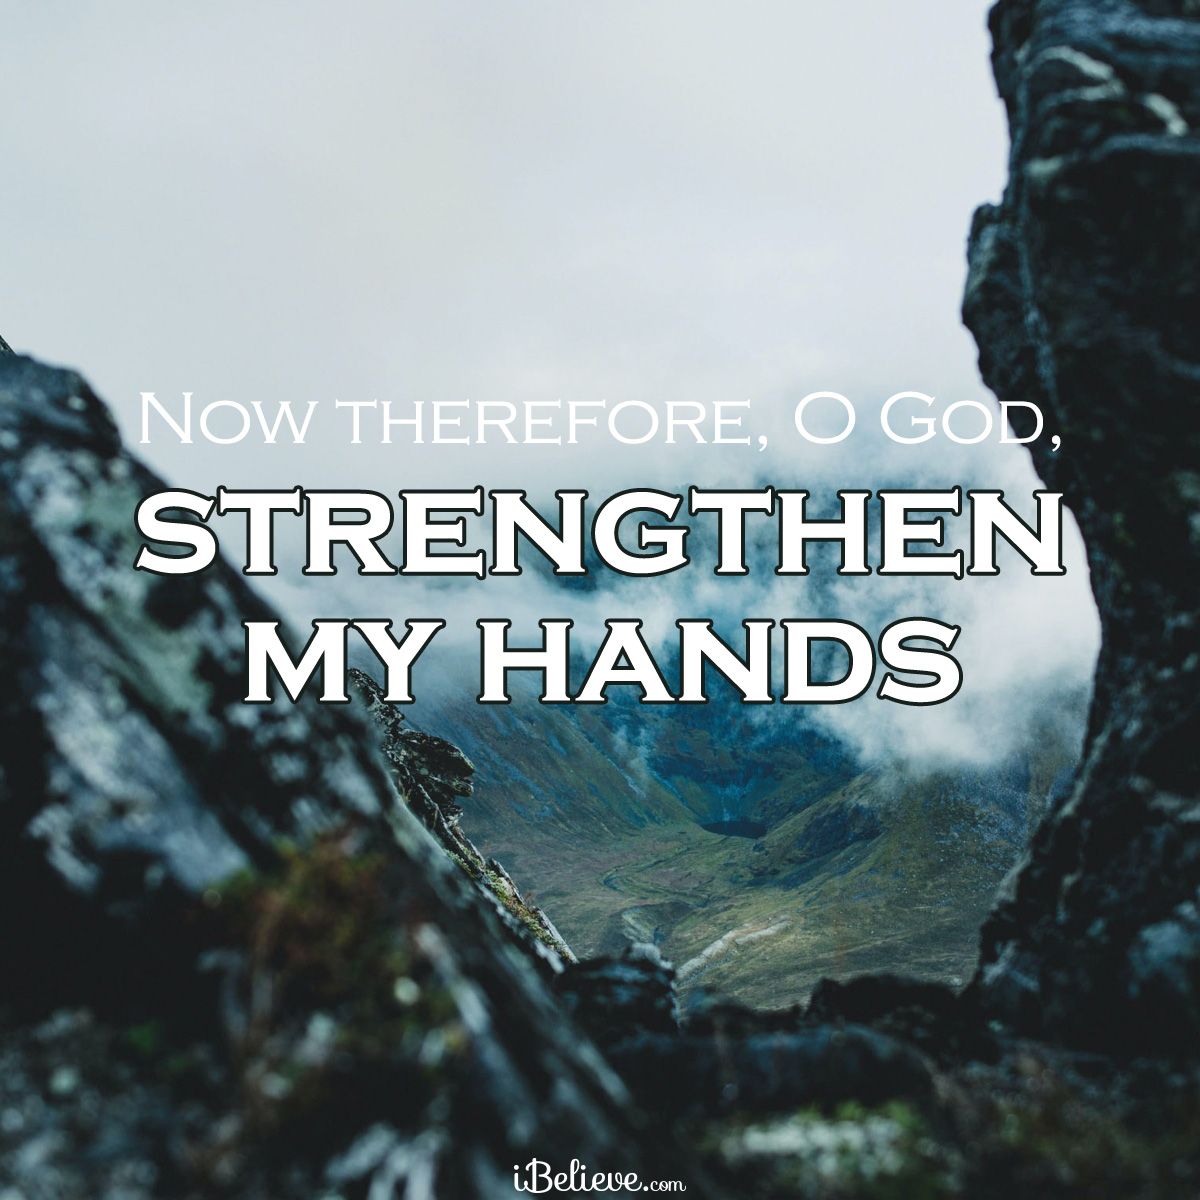 Strengthen my hands, inspirational image